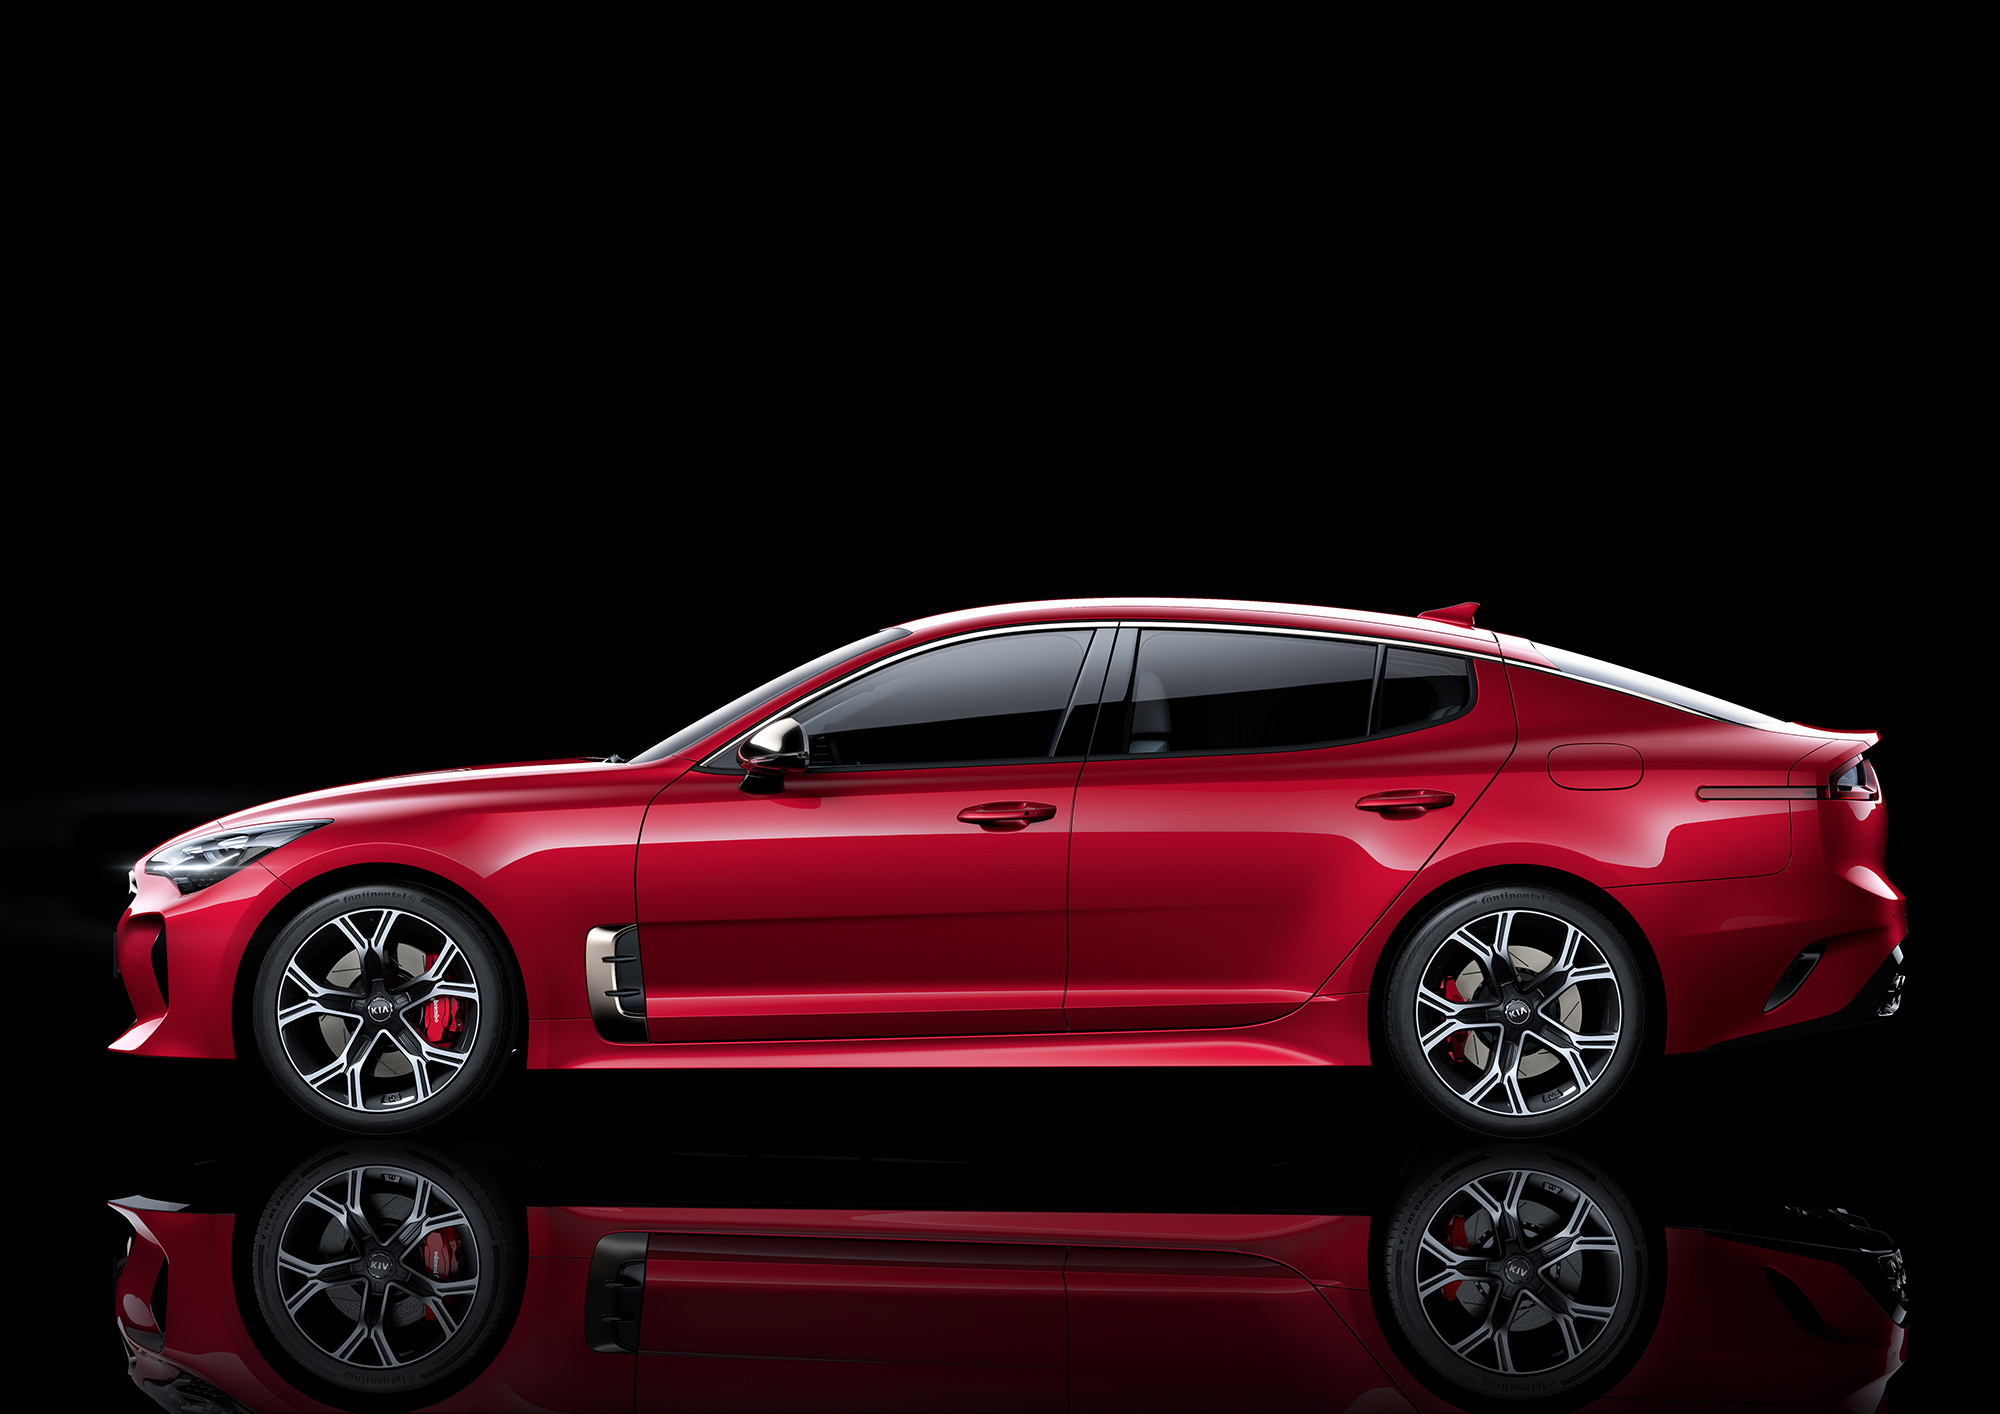 Kia Stinger Wallpapers Images Photos Pictures Backgrounds